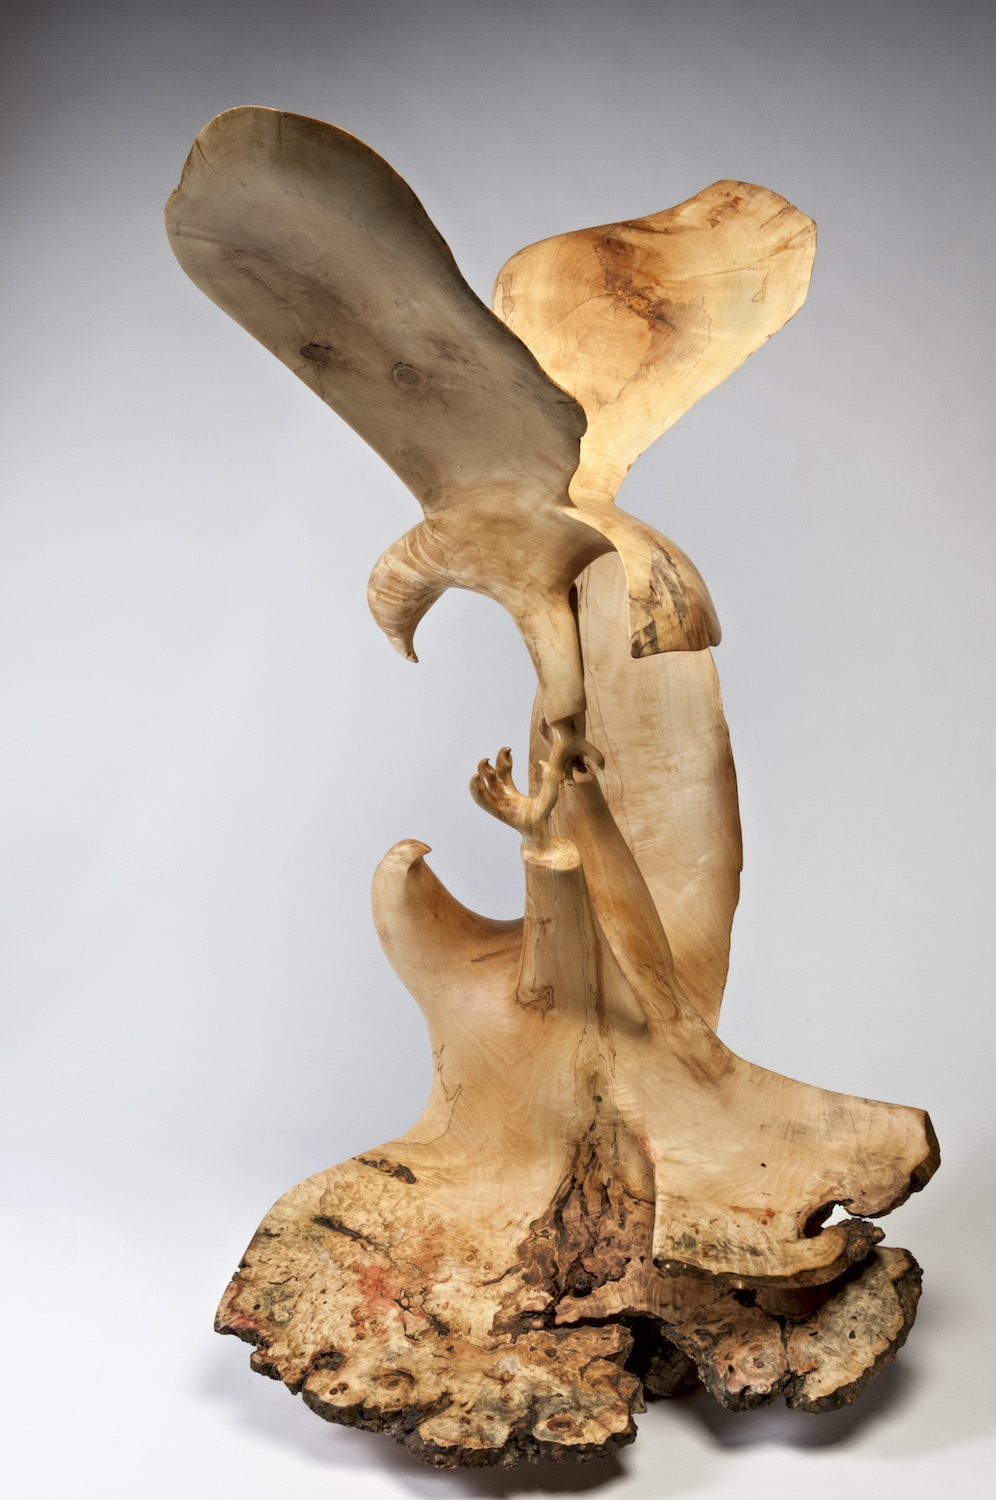 3rd Open, Traditional; Peoples' Choice Award; Carvers' Choice Award: Bill Nitzsche